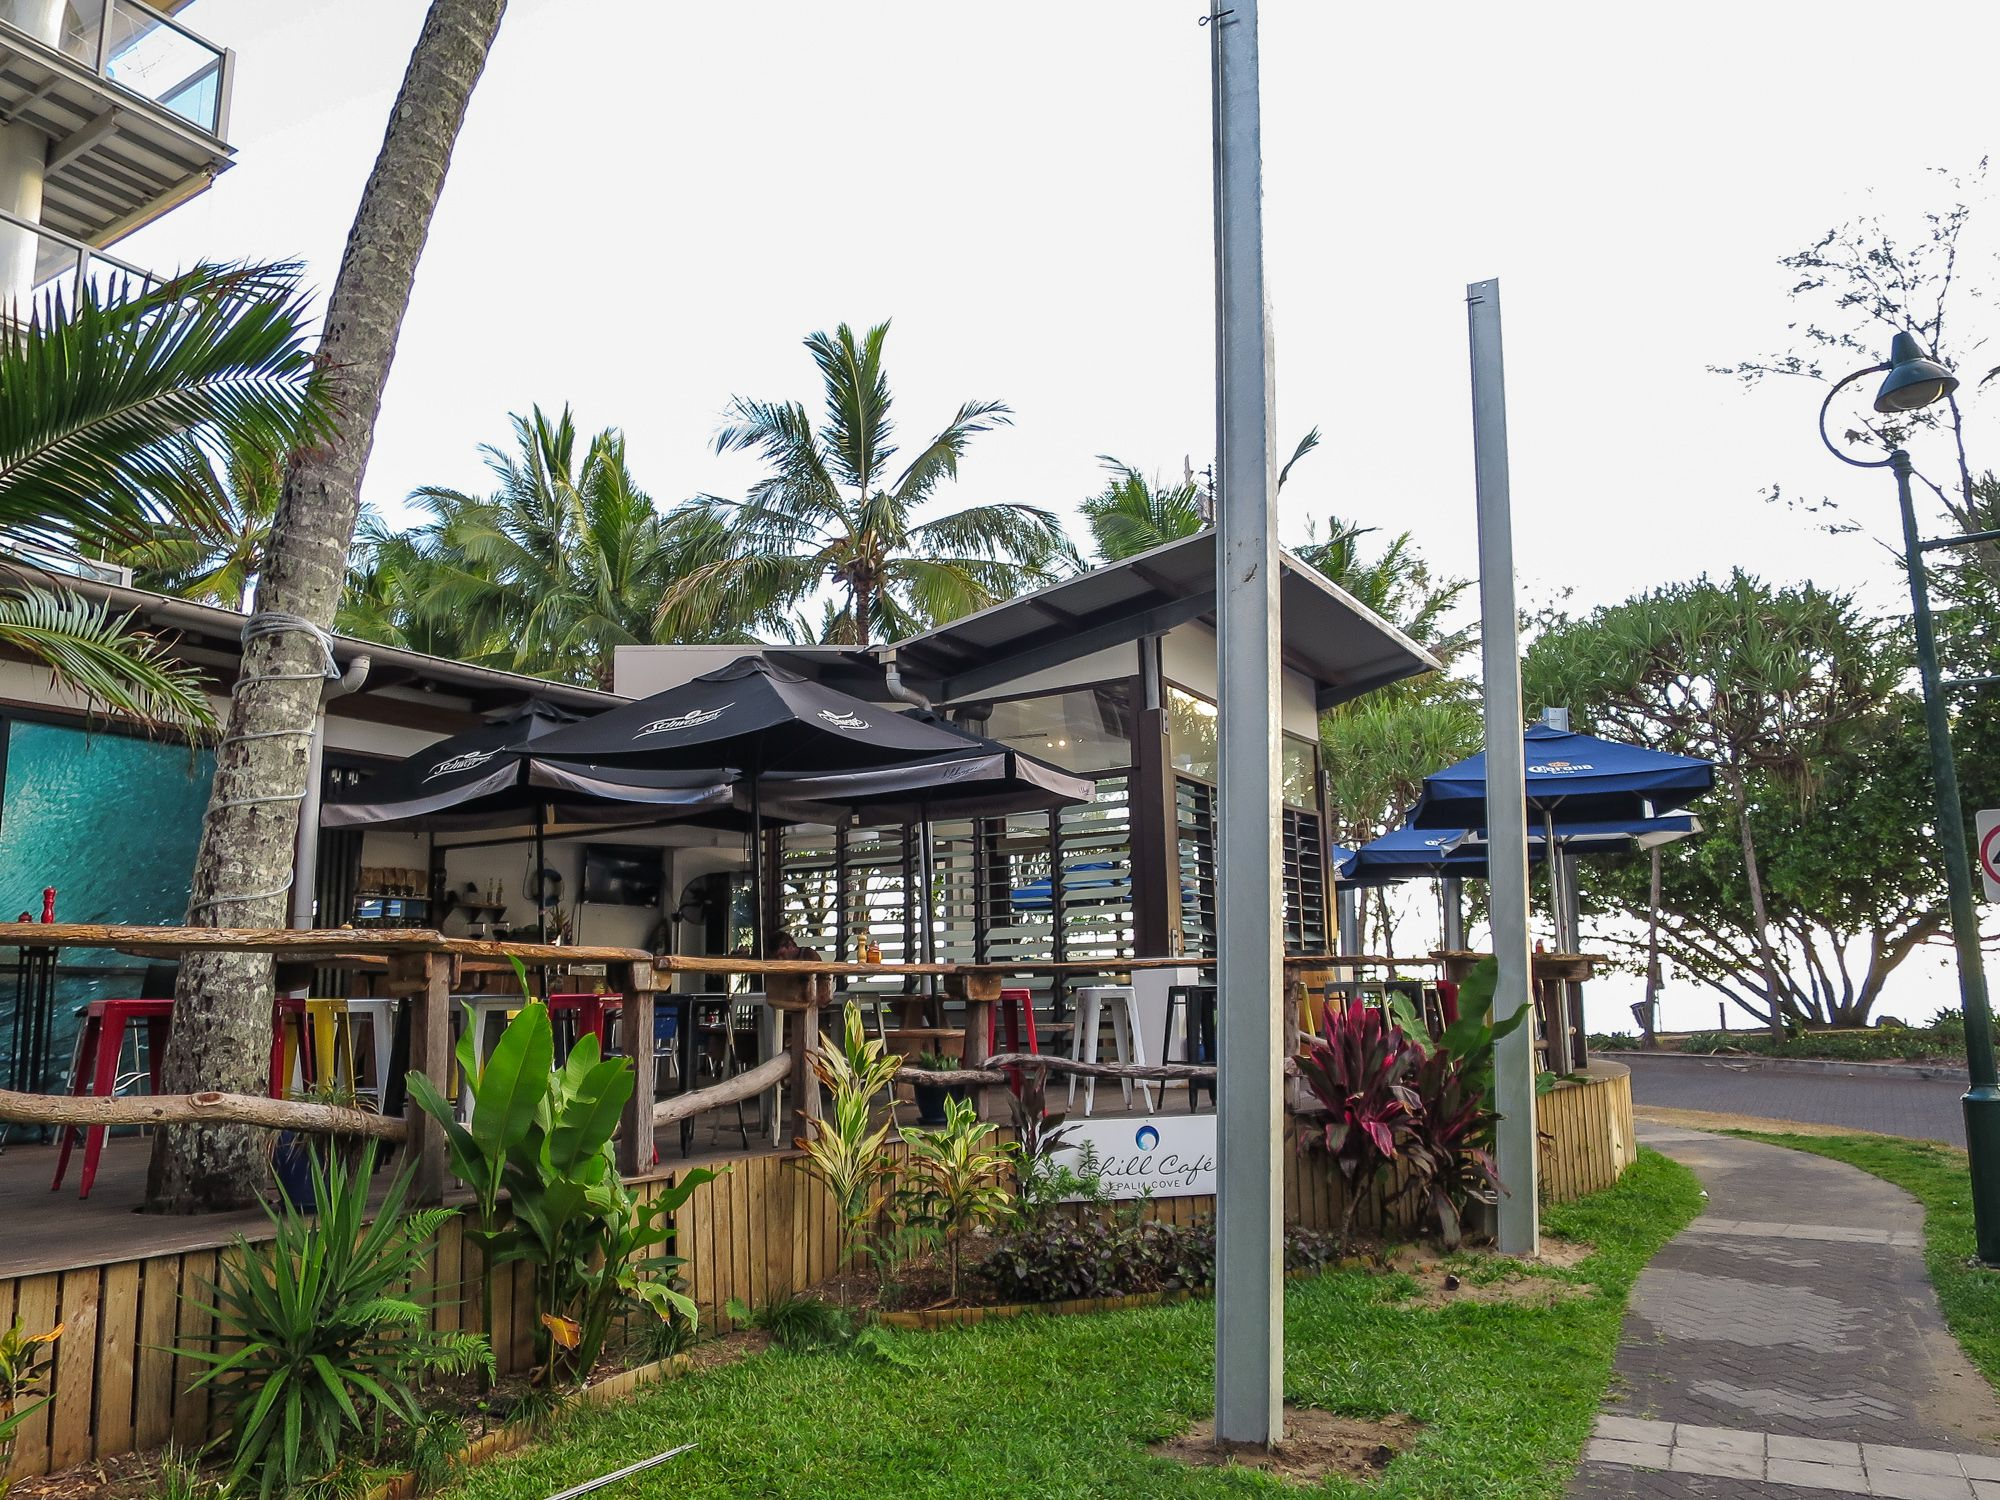 So many choices for breakfast in Palm Cove, even a picnic on the beach!